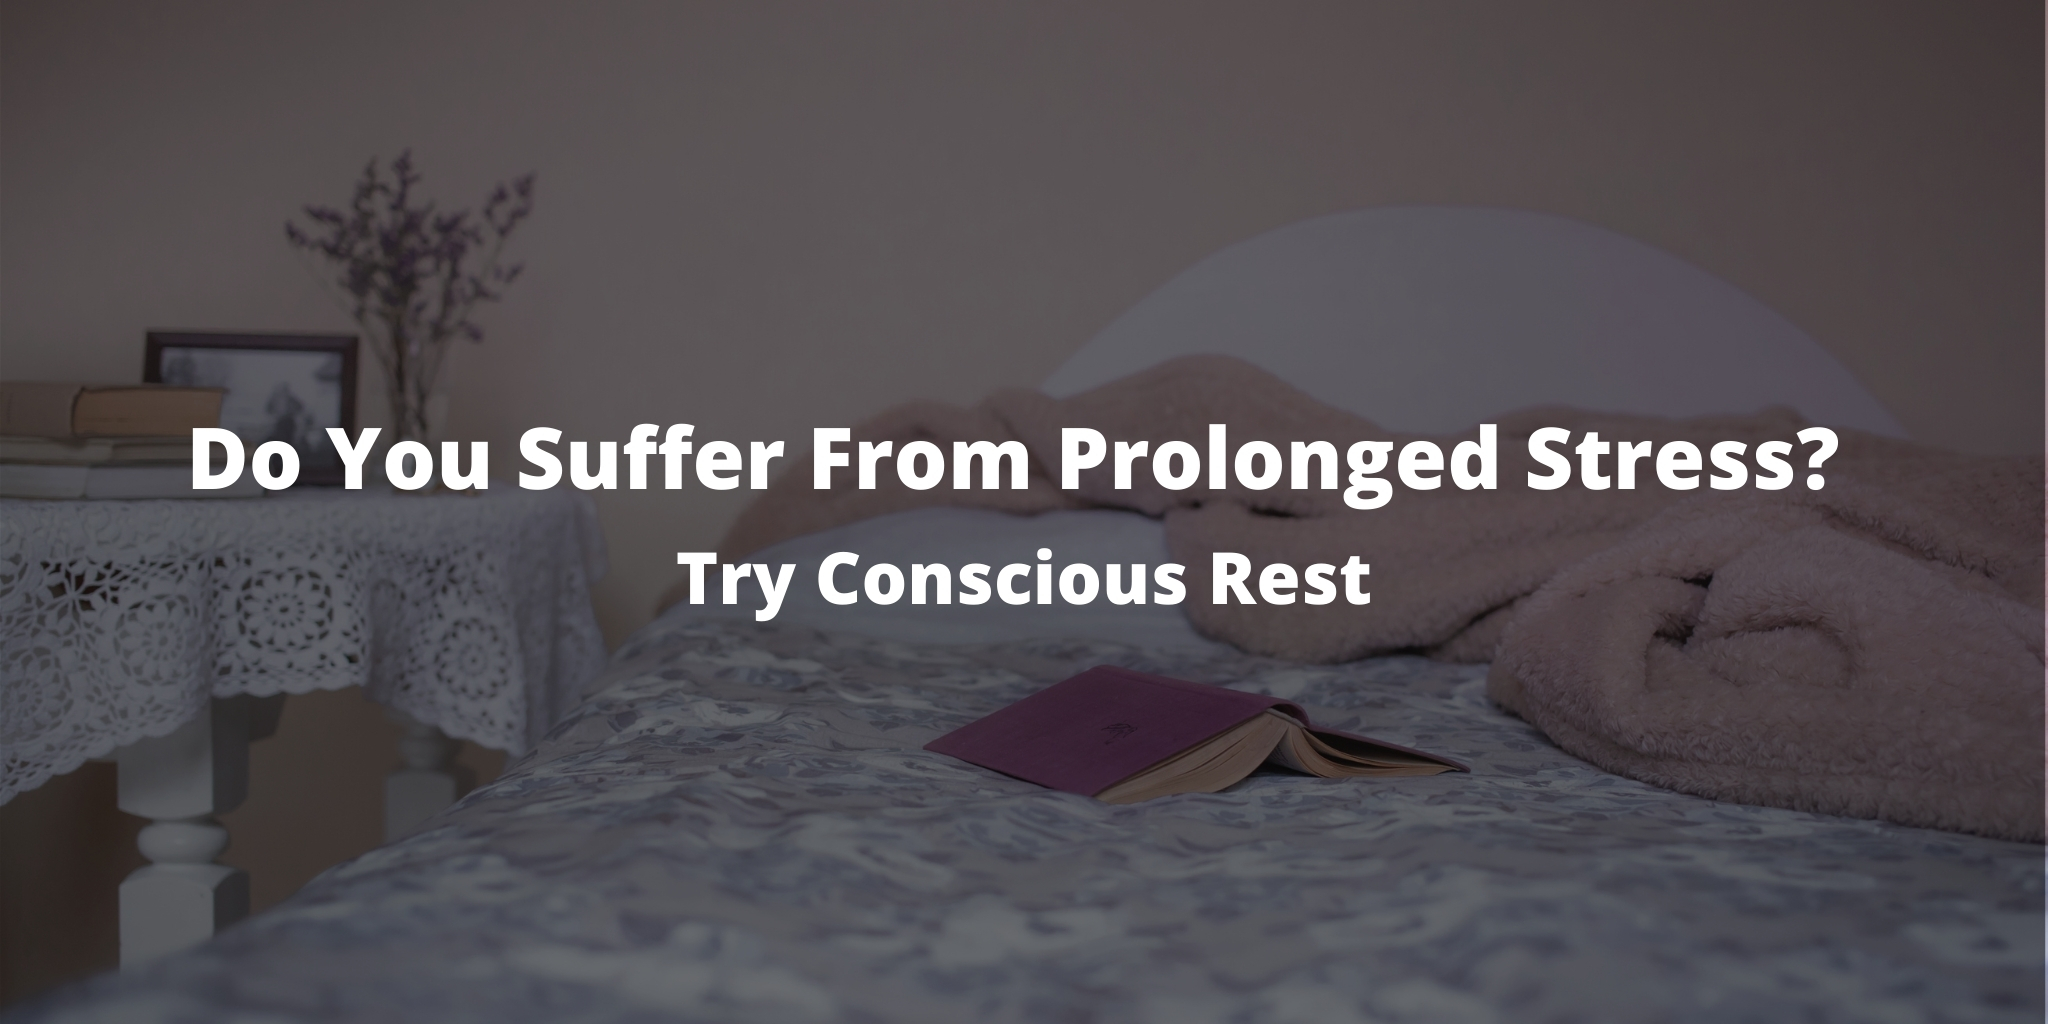 Do You Suffer From Prolonged Stress? Try Conscious Rest